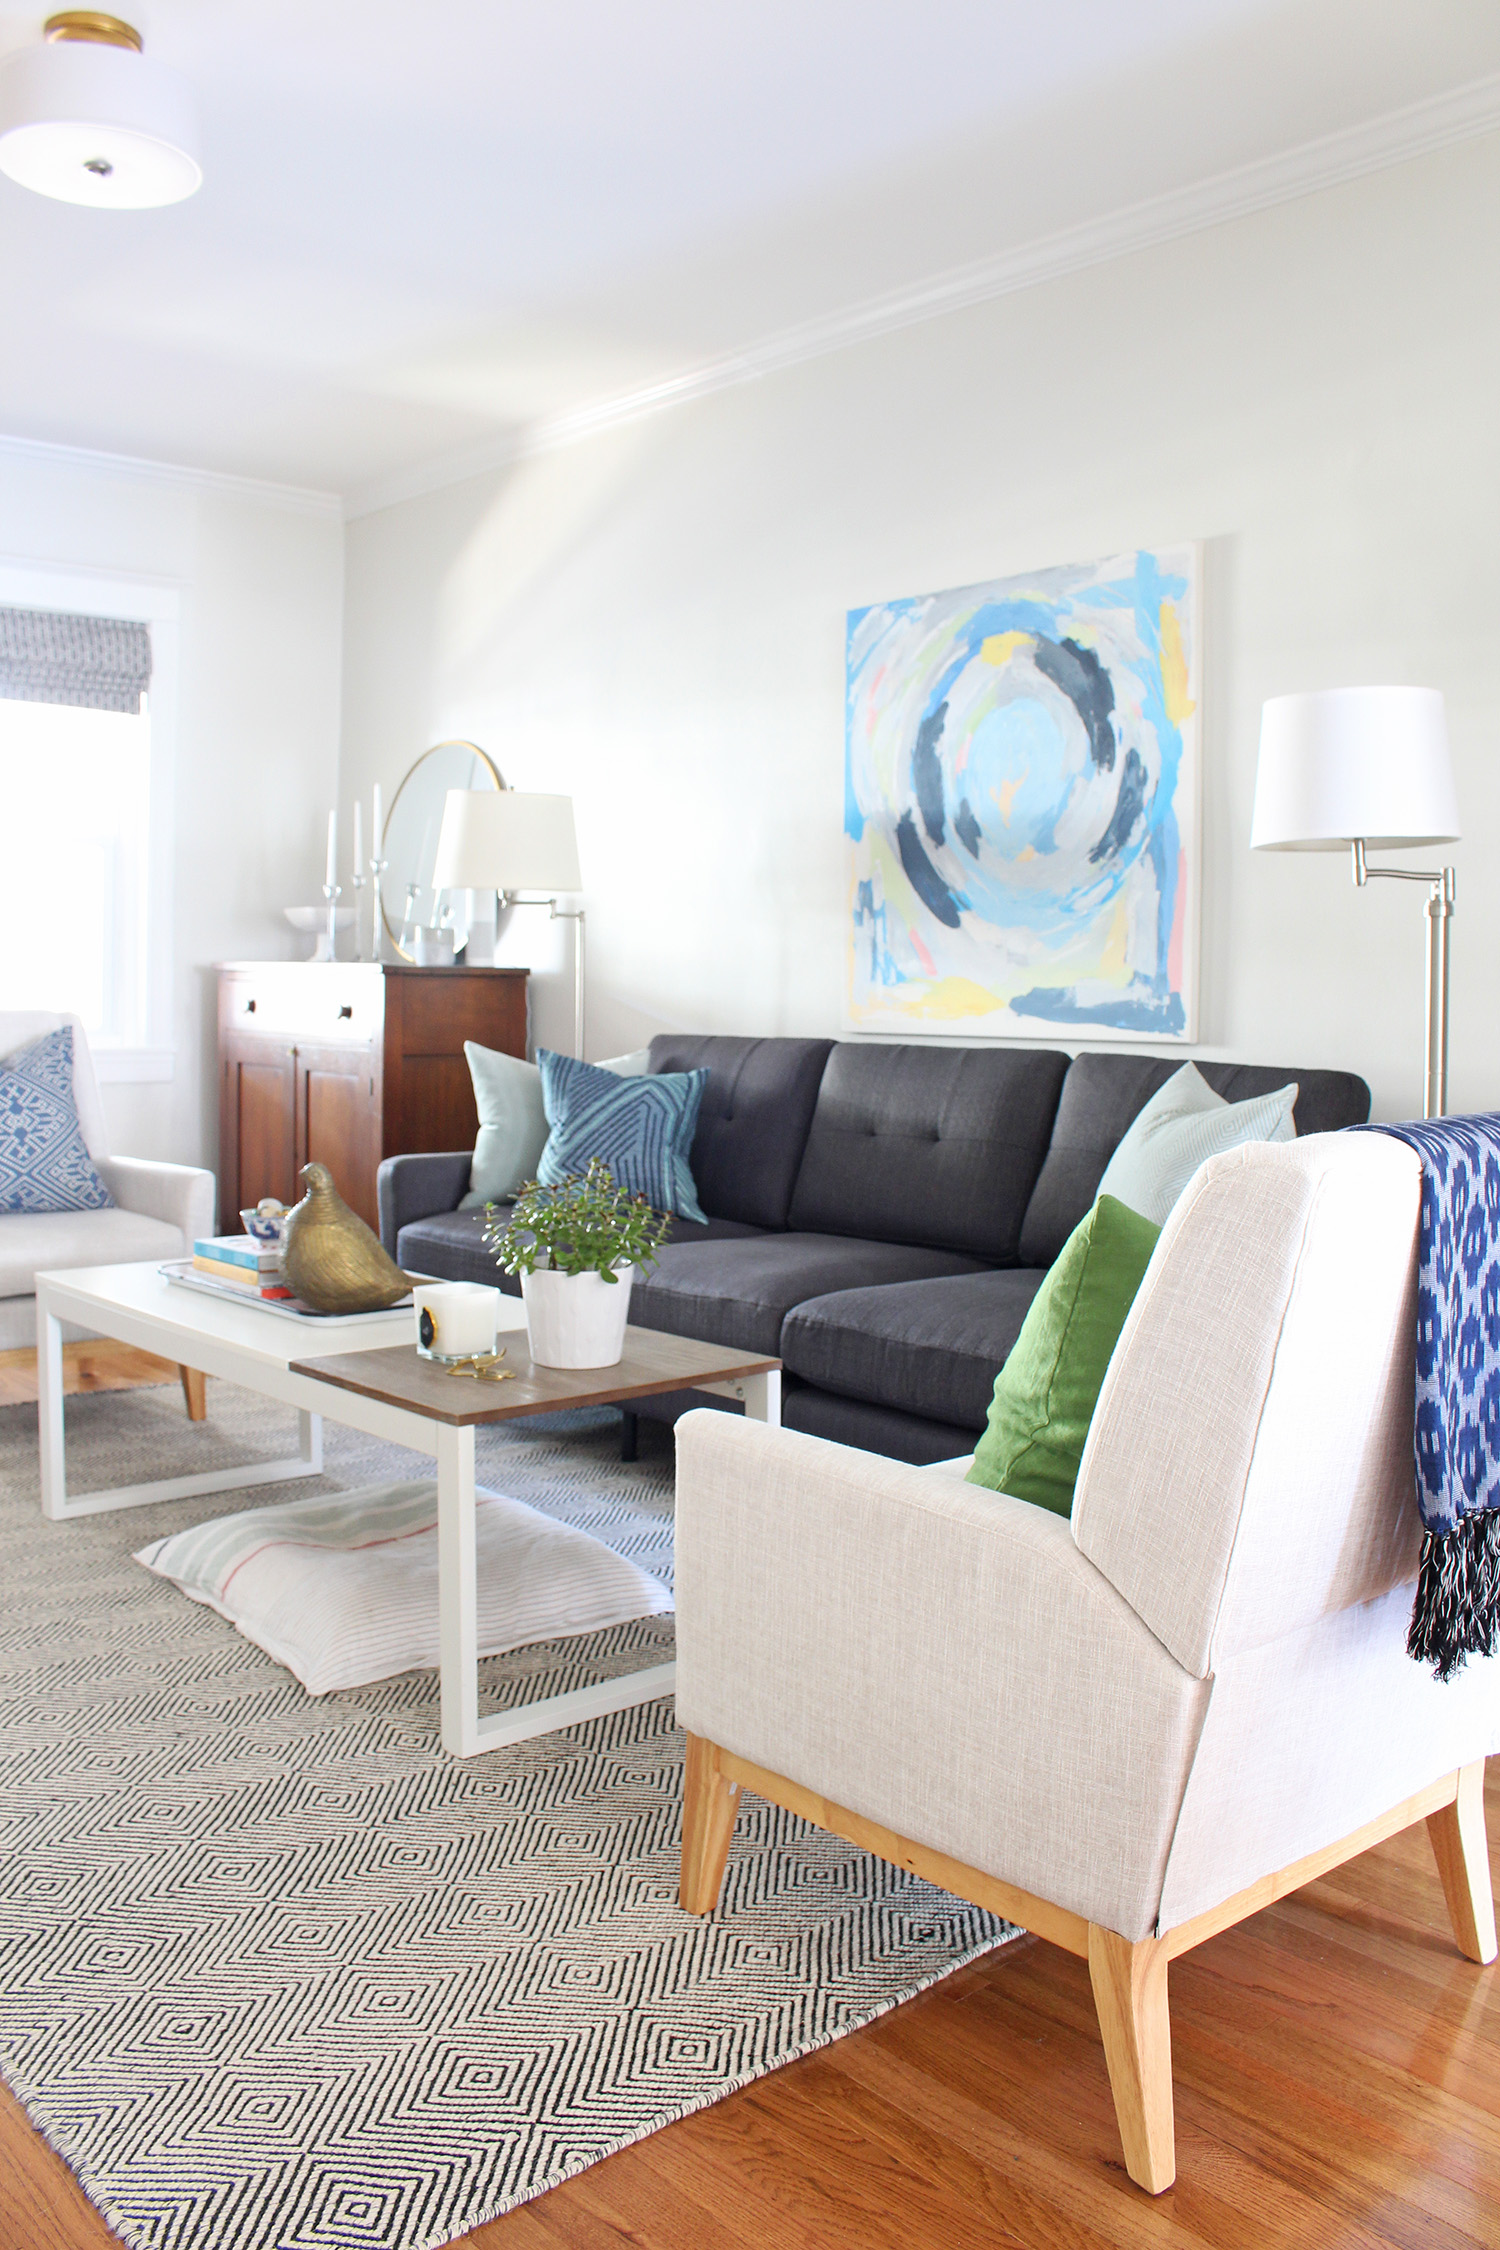 Find five small space design ideas that balance style and function on the Mix & Match Design Company blog.